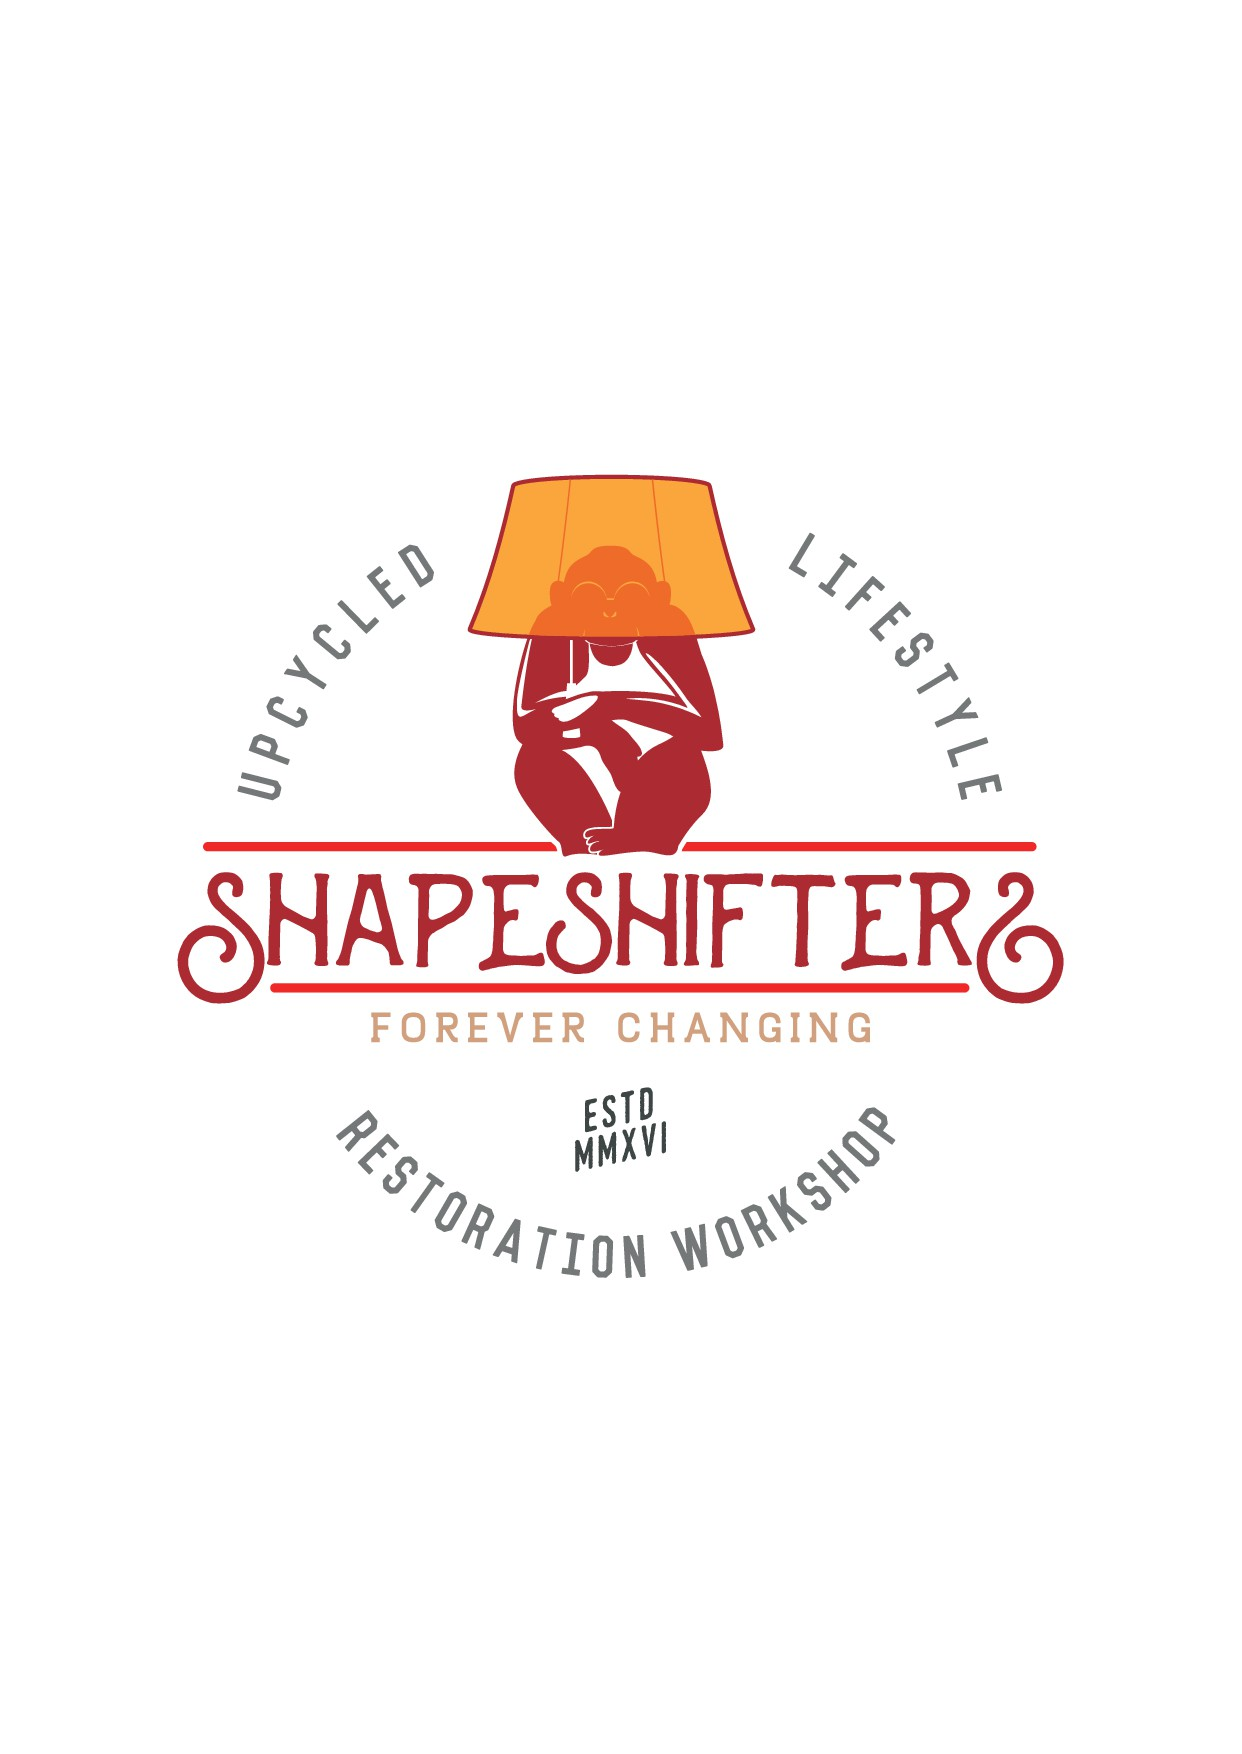 """Capture the """"SPIRIT"""" of the ShapeshifterS in our logo design."""